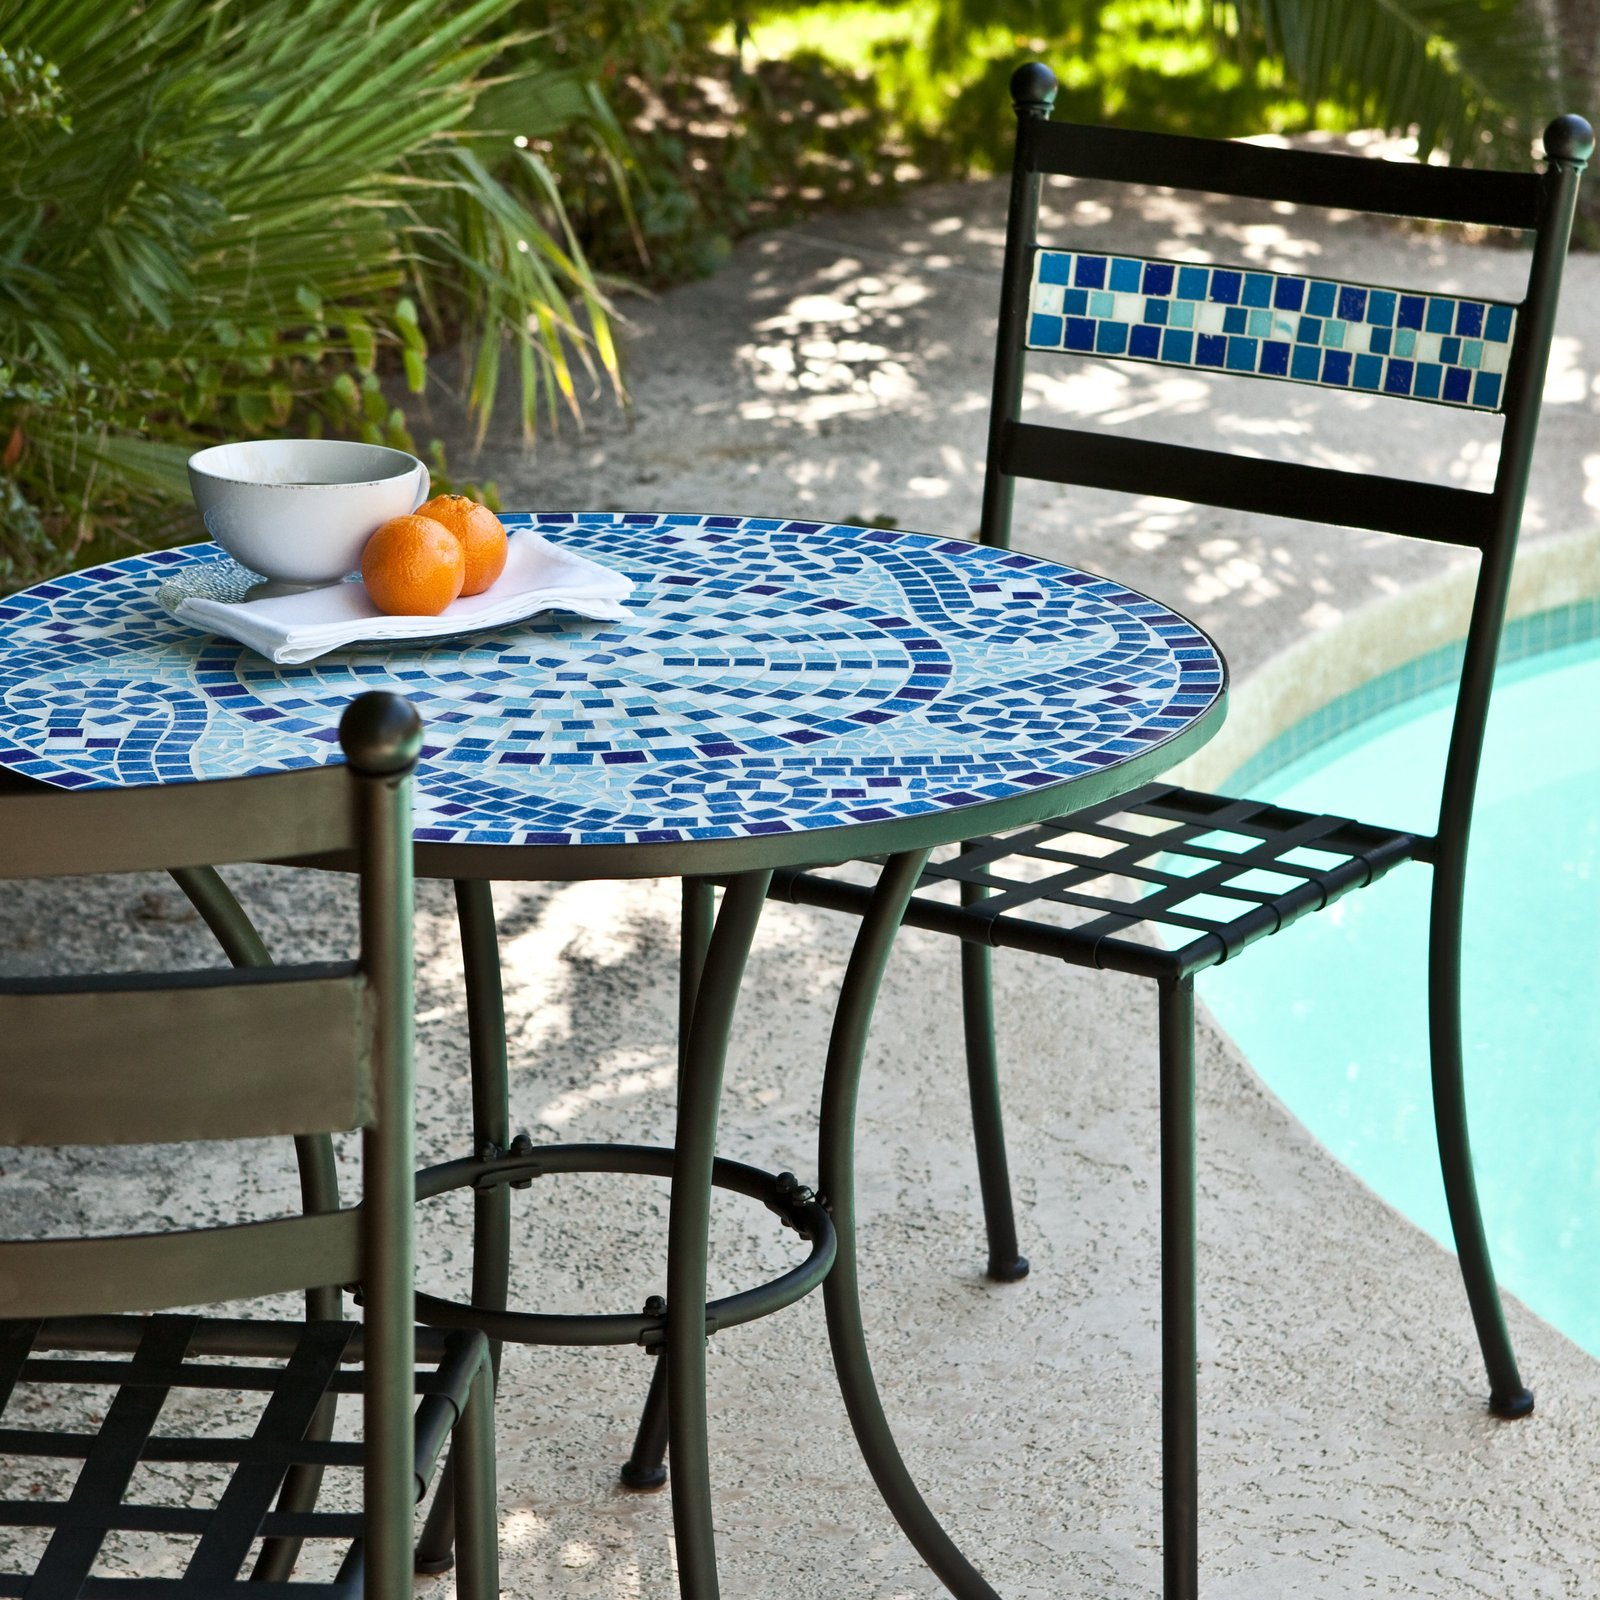 Bistro Set Patio Table Chairs Mosaic Tile Garden Deck